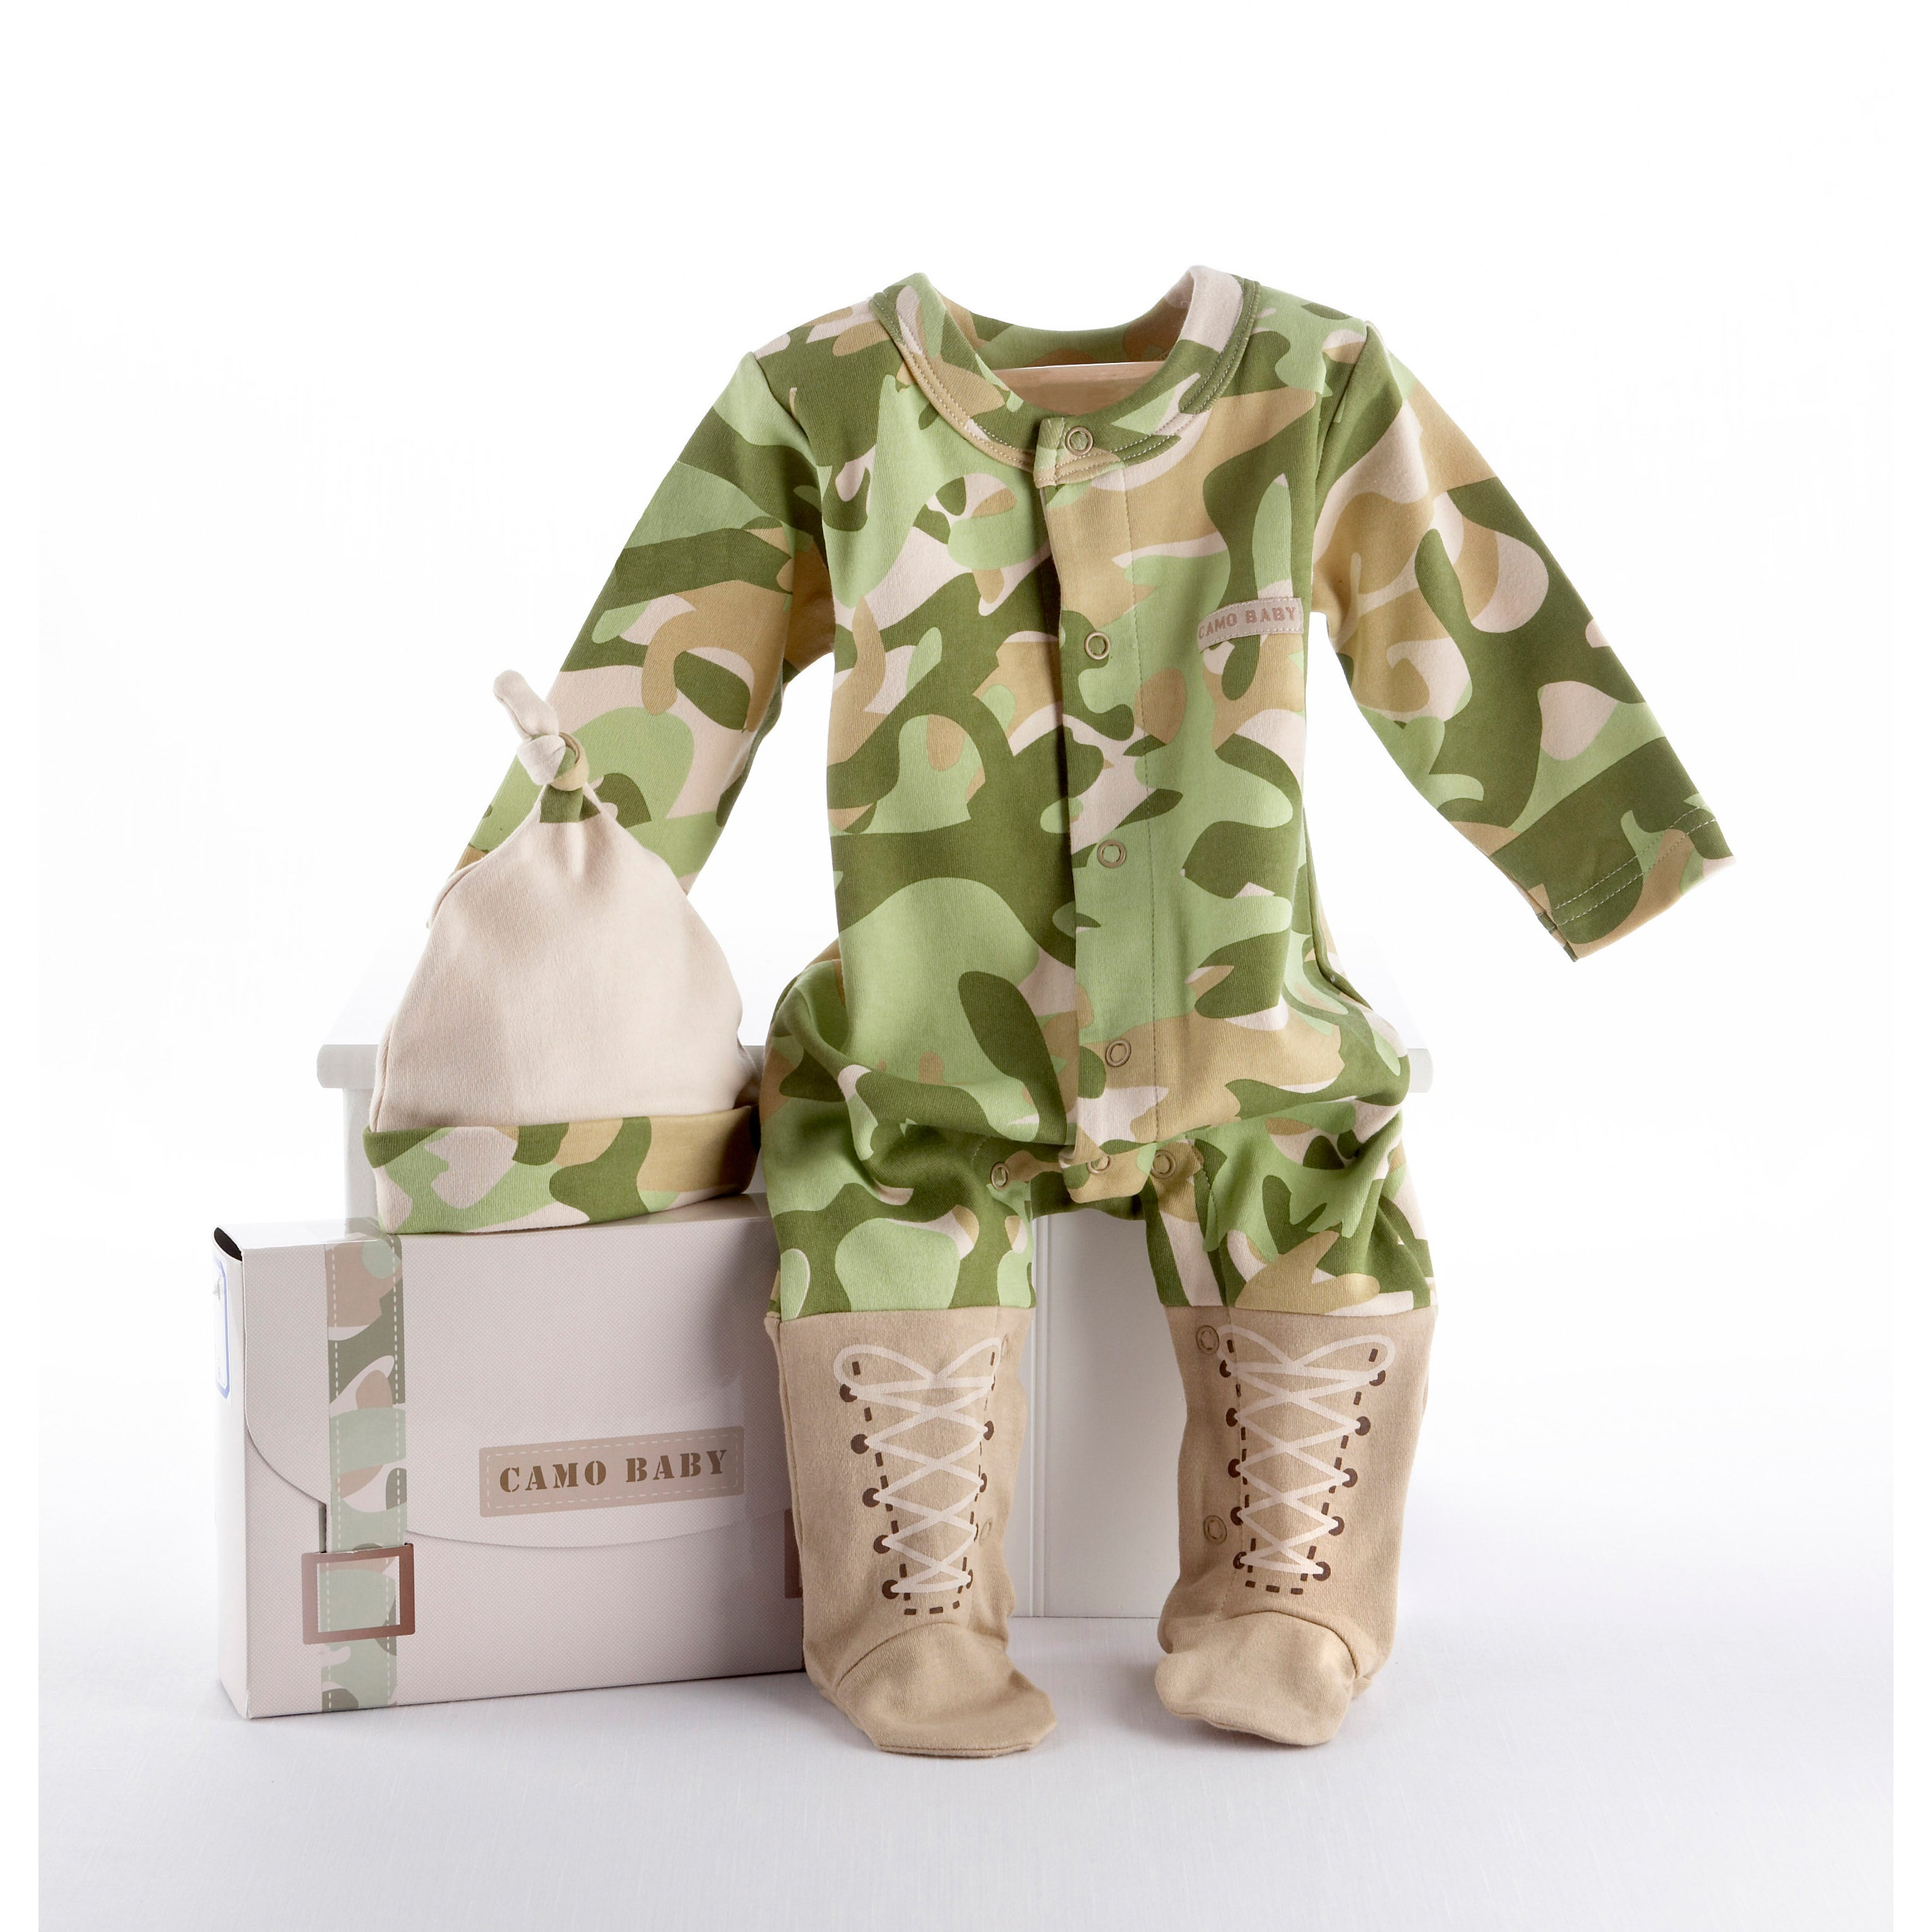 Baby Aspen Big Dreamzzz Baby Camo 2-piece Layette Set